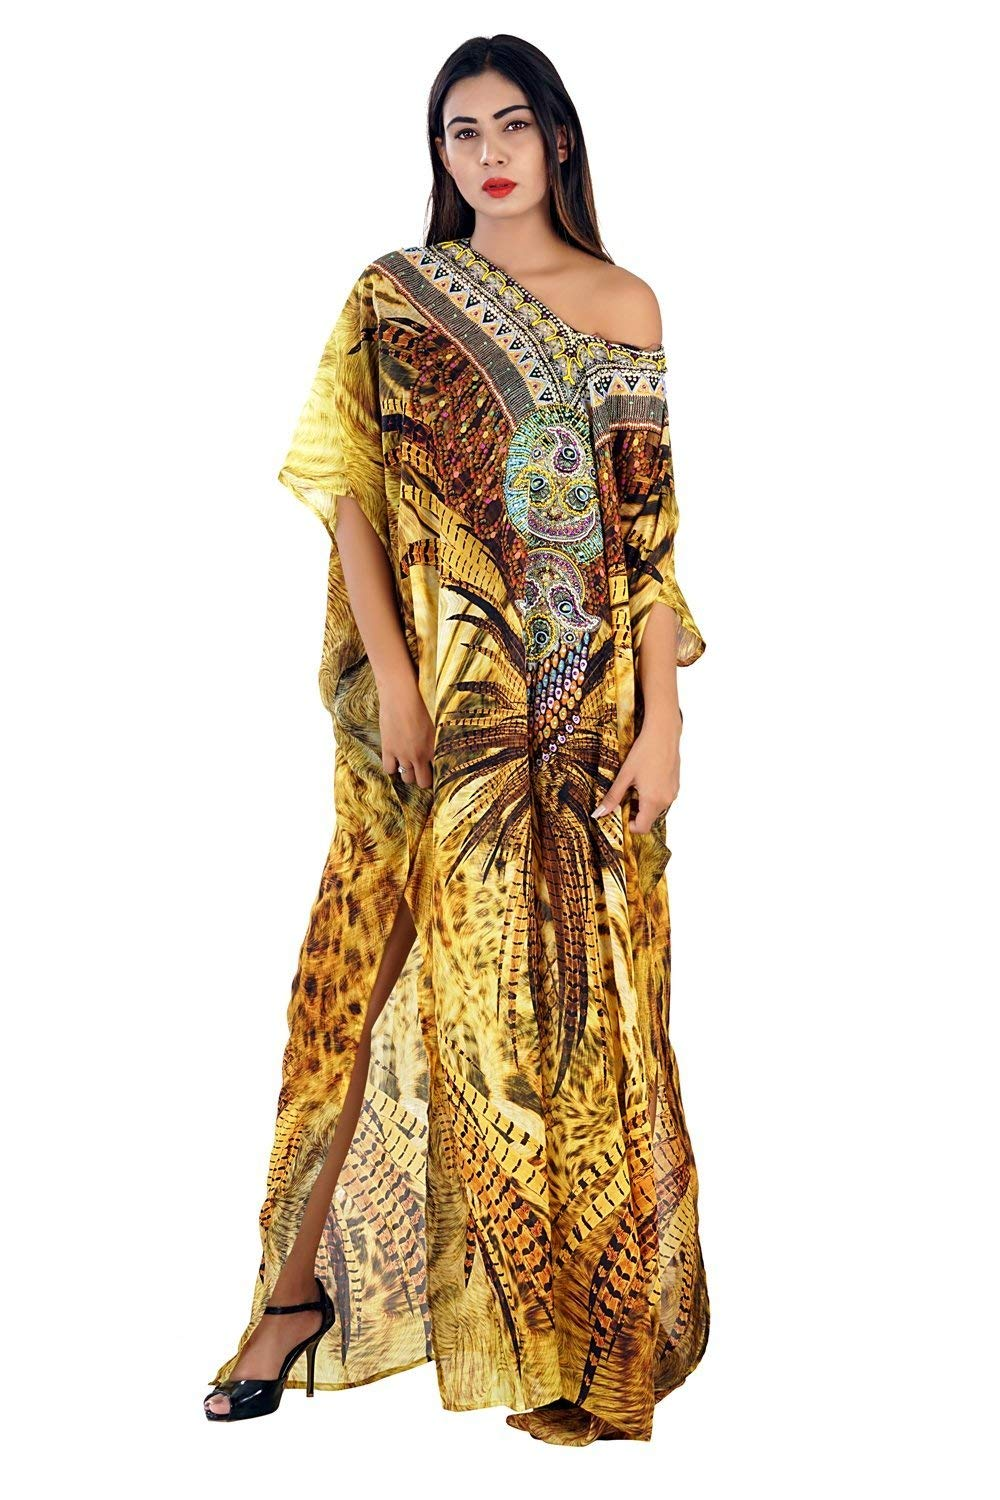 c84d2674e9bc8 Get Quotations · Silk kaftan online one piece dress on sale jeweled hand  made formal